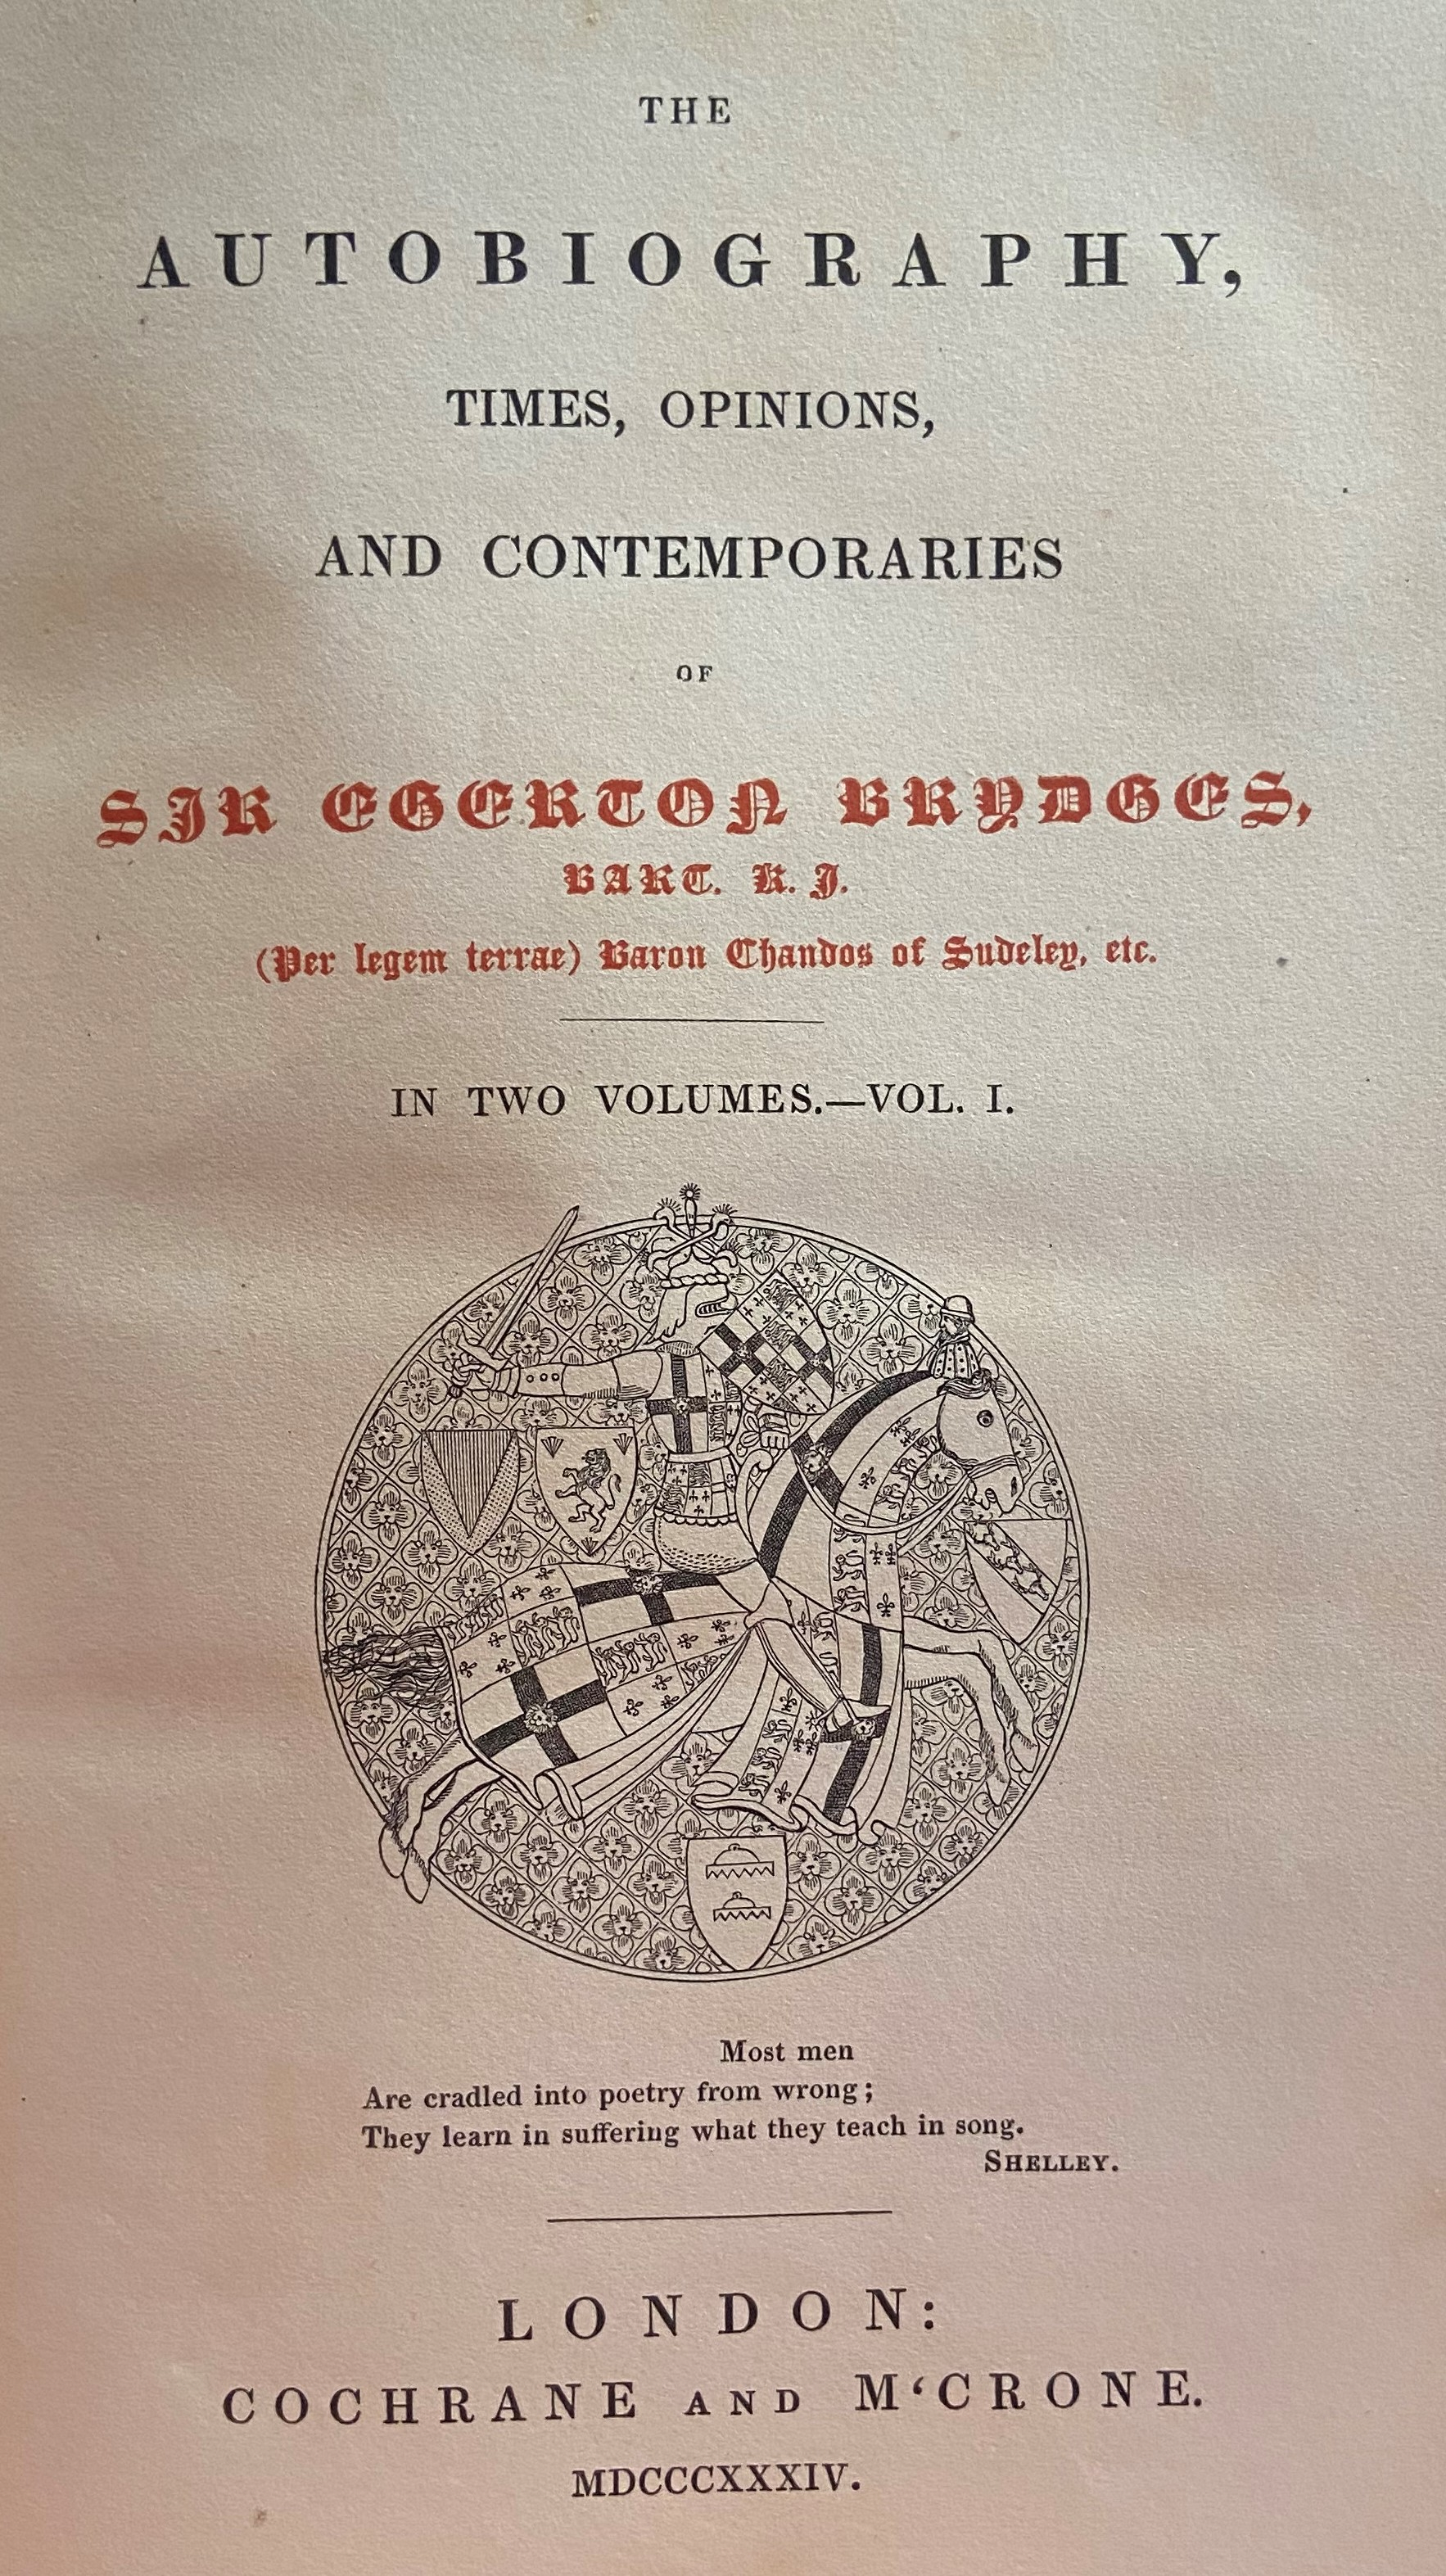 Brydges (Sir Egerton)ÿTheÿAutobiography, Times, Opinions and Contemporaries of ..., 2 vols. L.